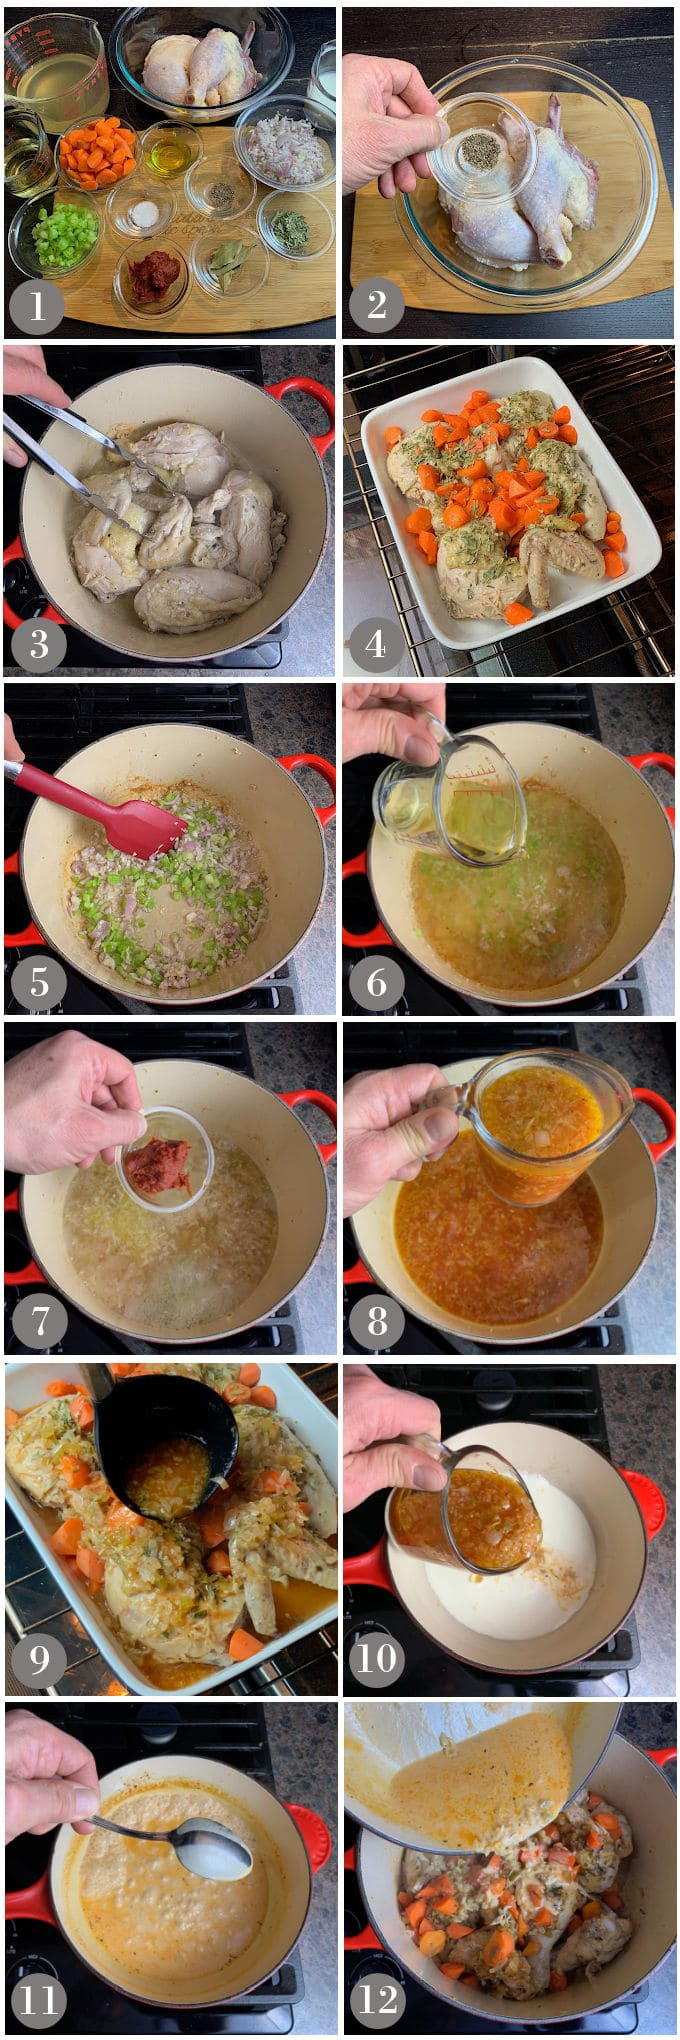 A collage of photos showing the steps to make chicken tarragon.